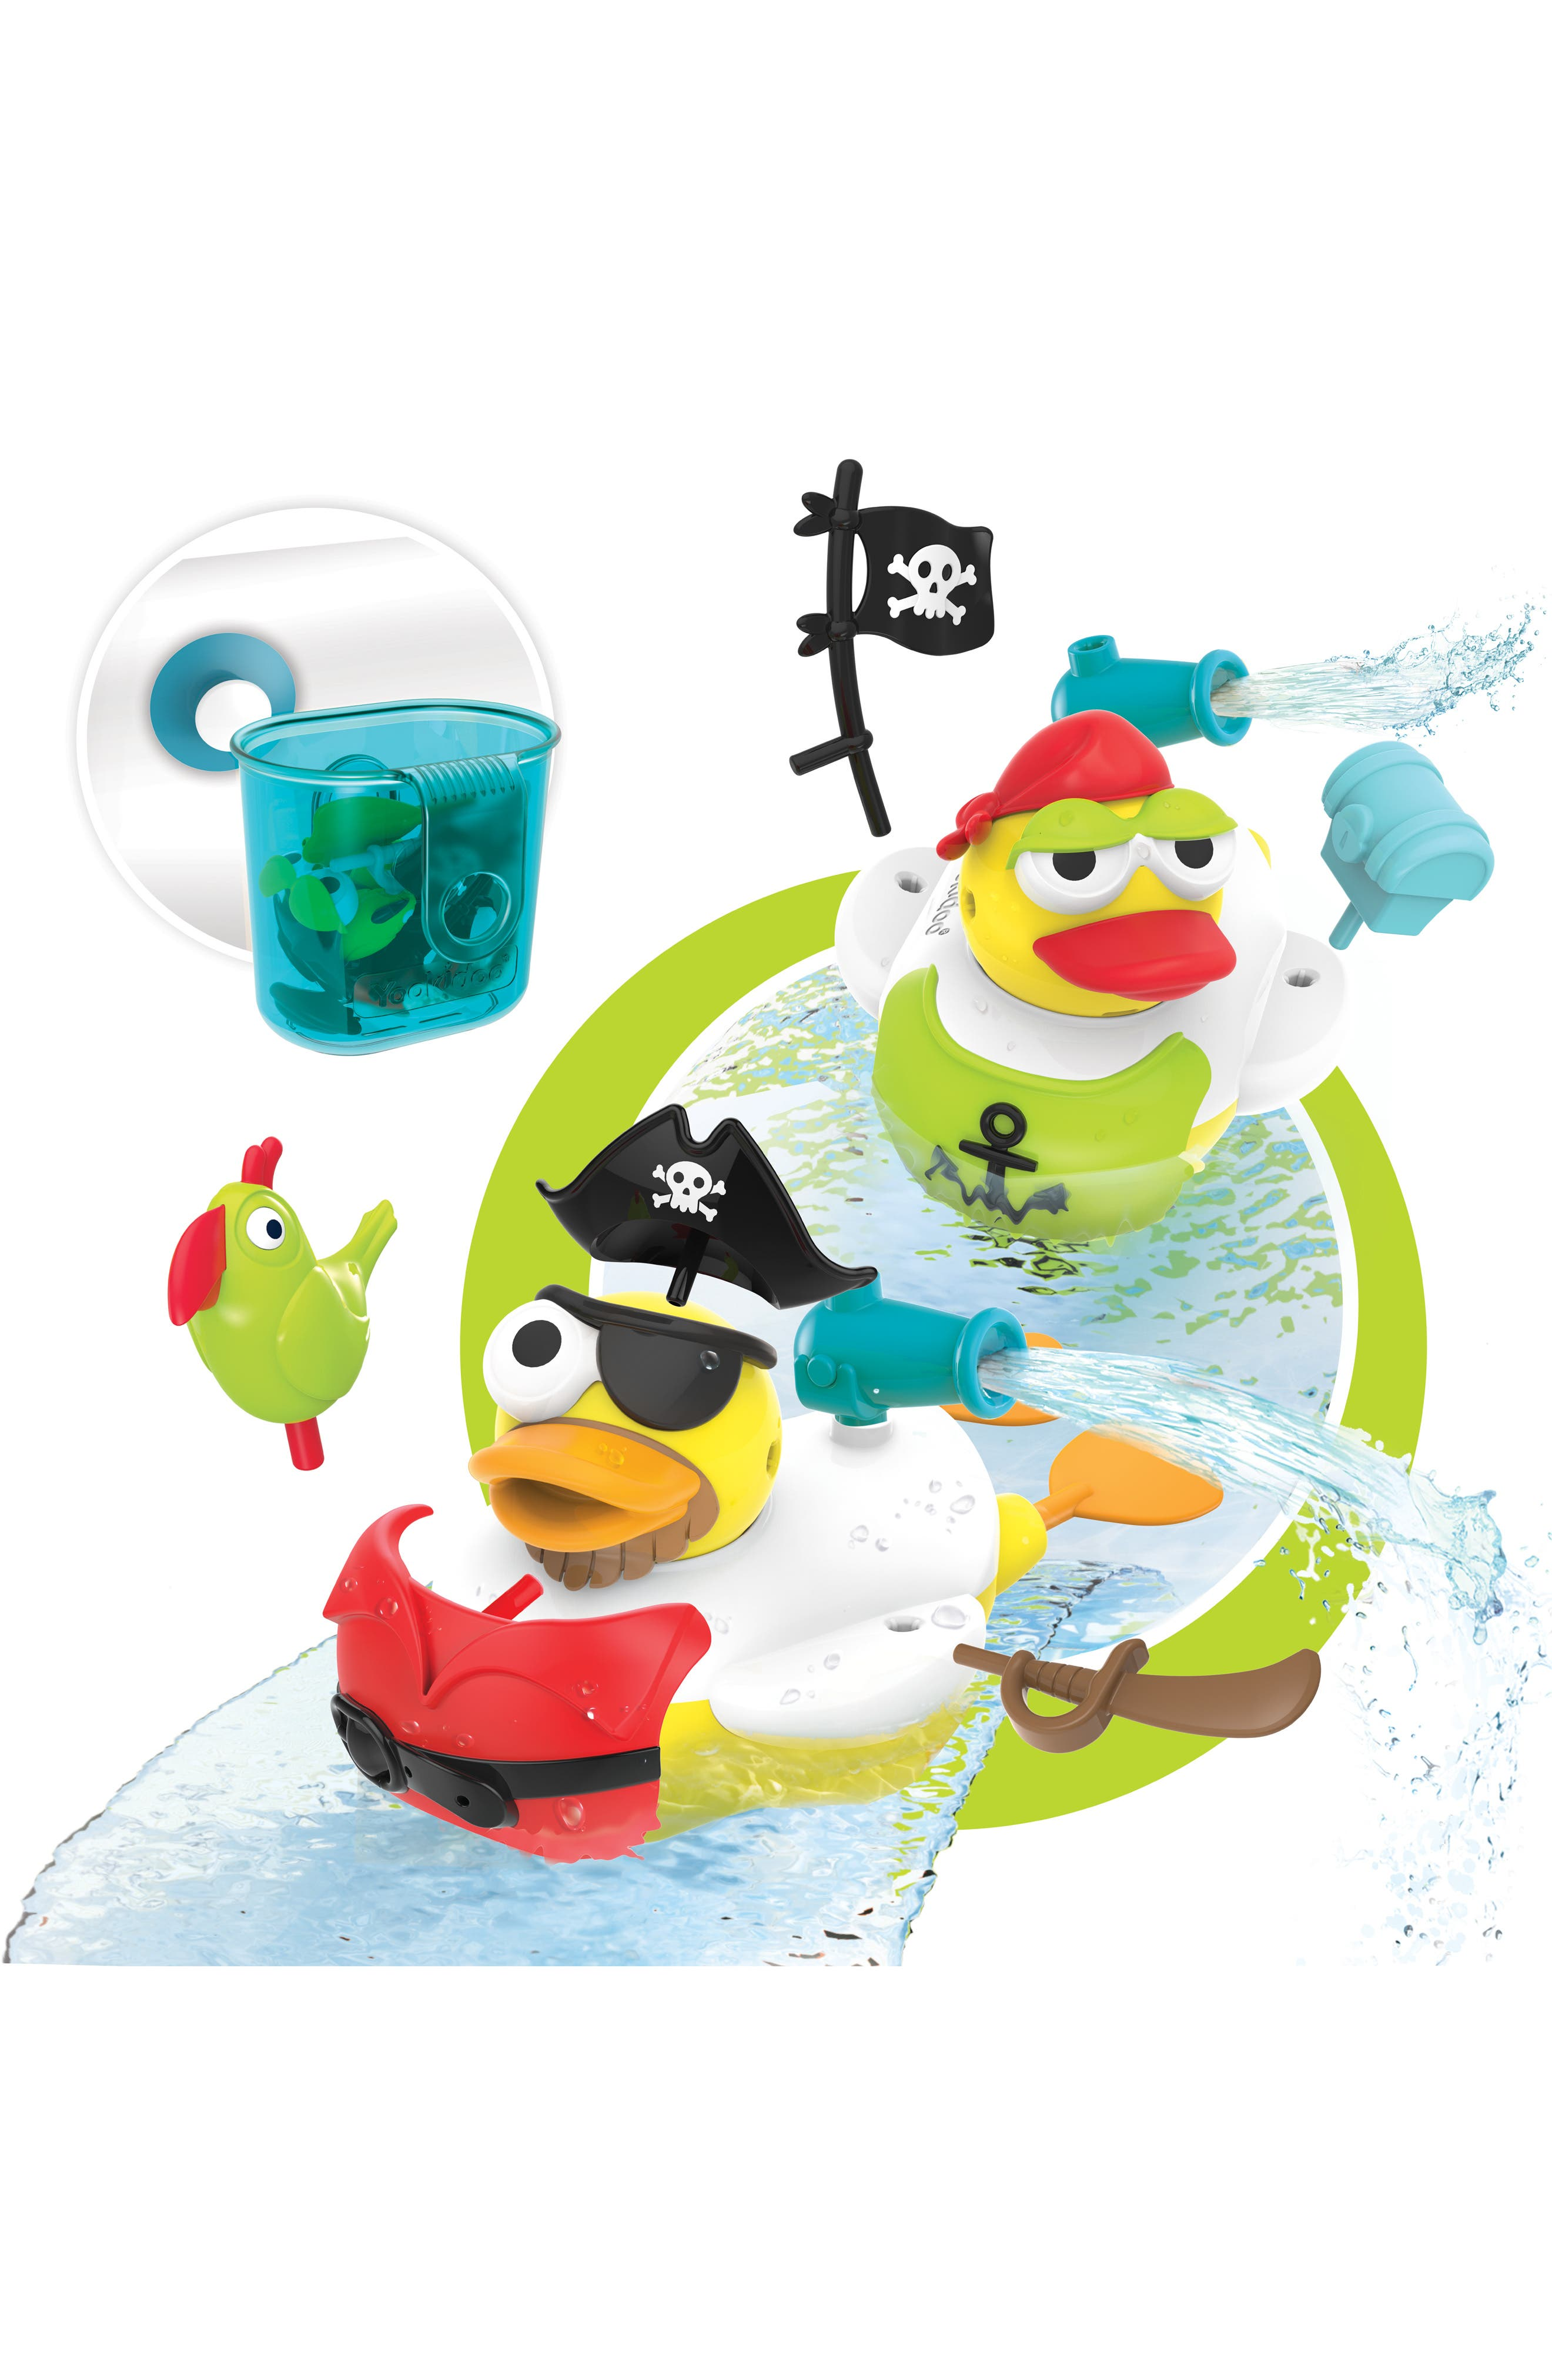 Jet Duck<sup>™</sup> Create a Pirate Bath Toy Kit,                             Alternate thumbnail 13, color,                             YELLOW